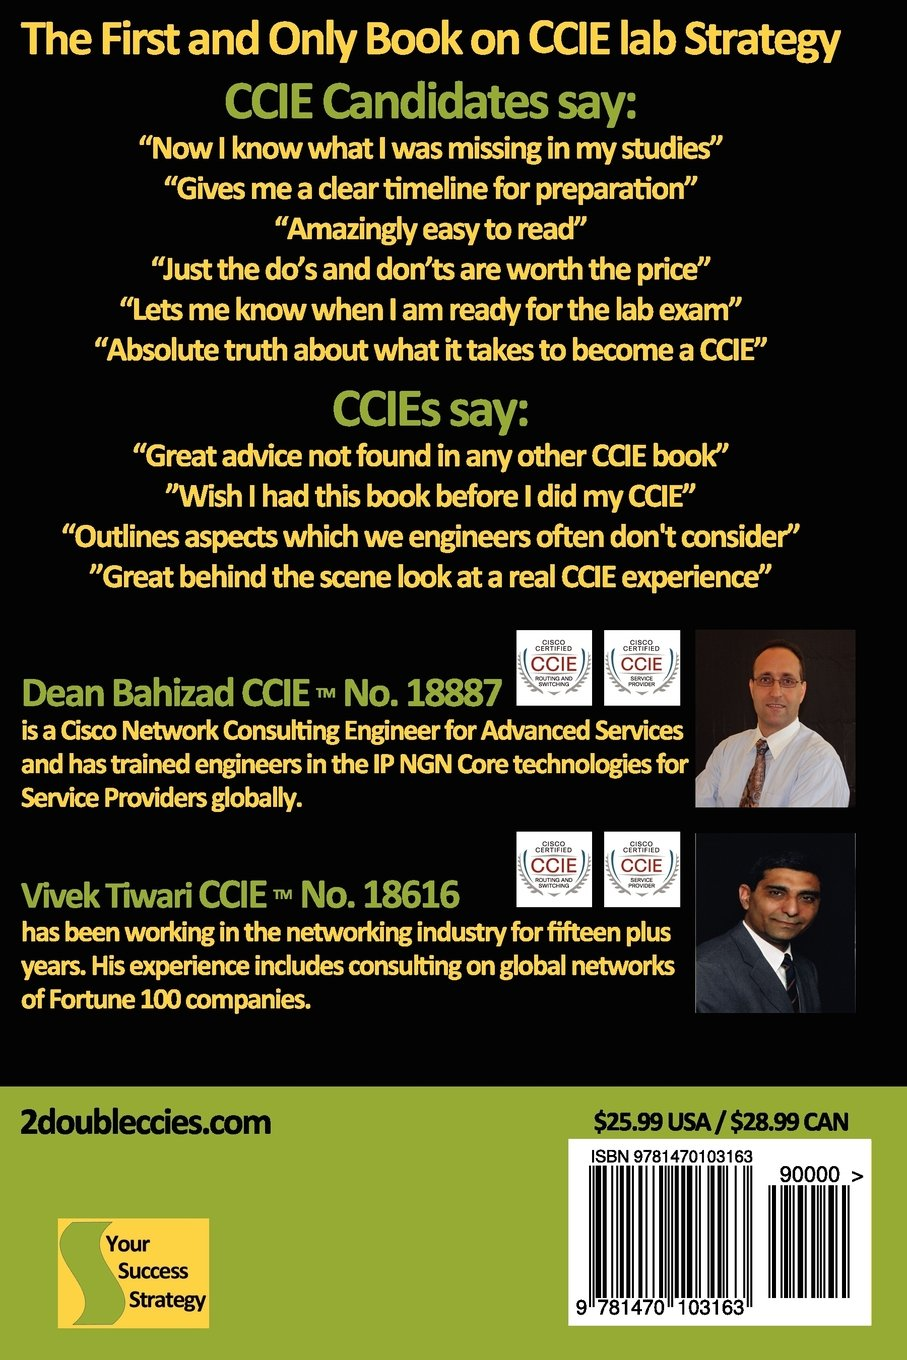 your ccie lab success strategy the non technical guidebook mr dean bahizad mr vivek tiwari 9781470103163 amazoncom books - Network Consulting Engineer